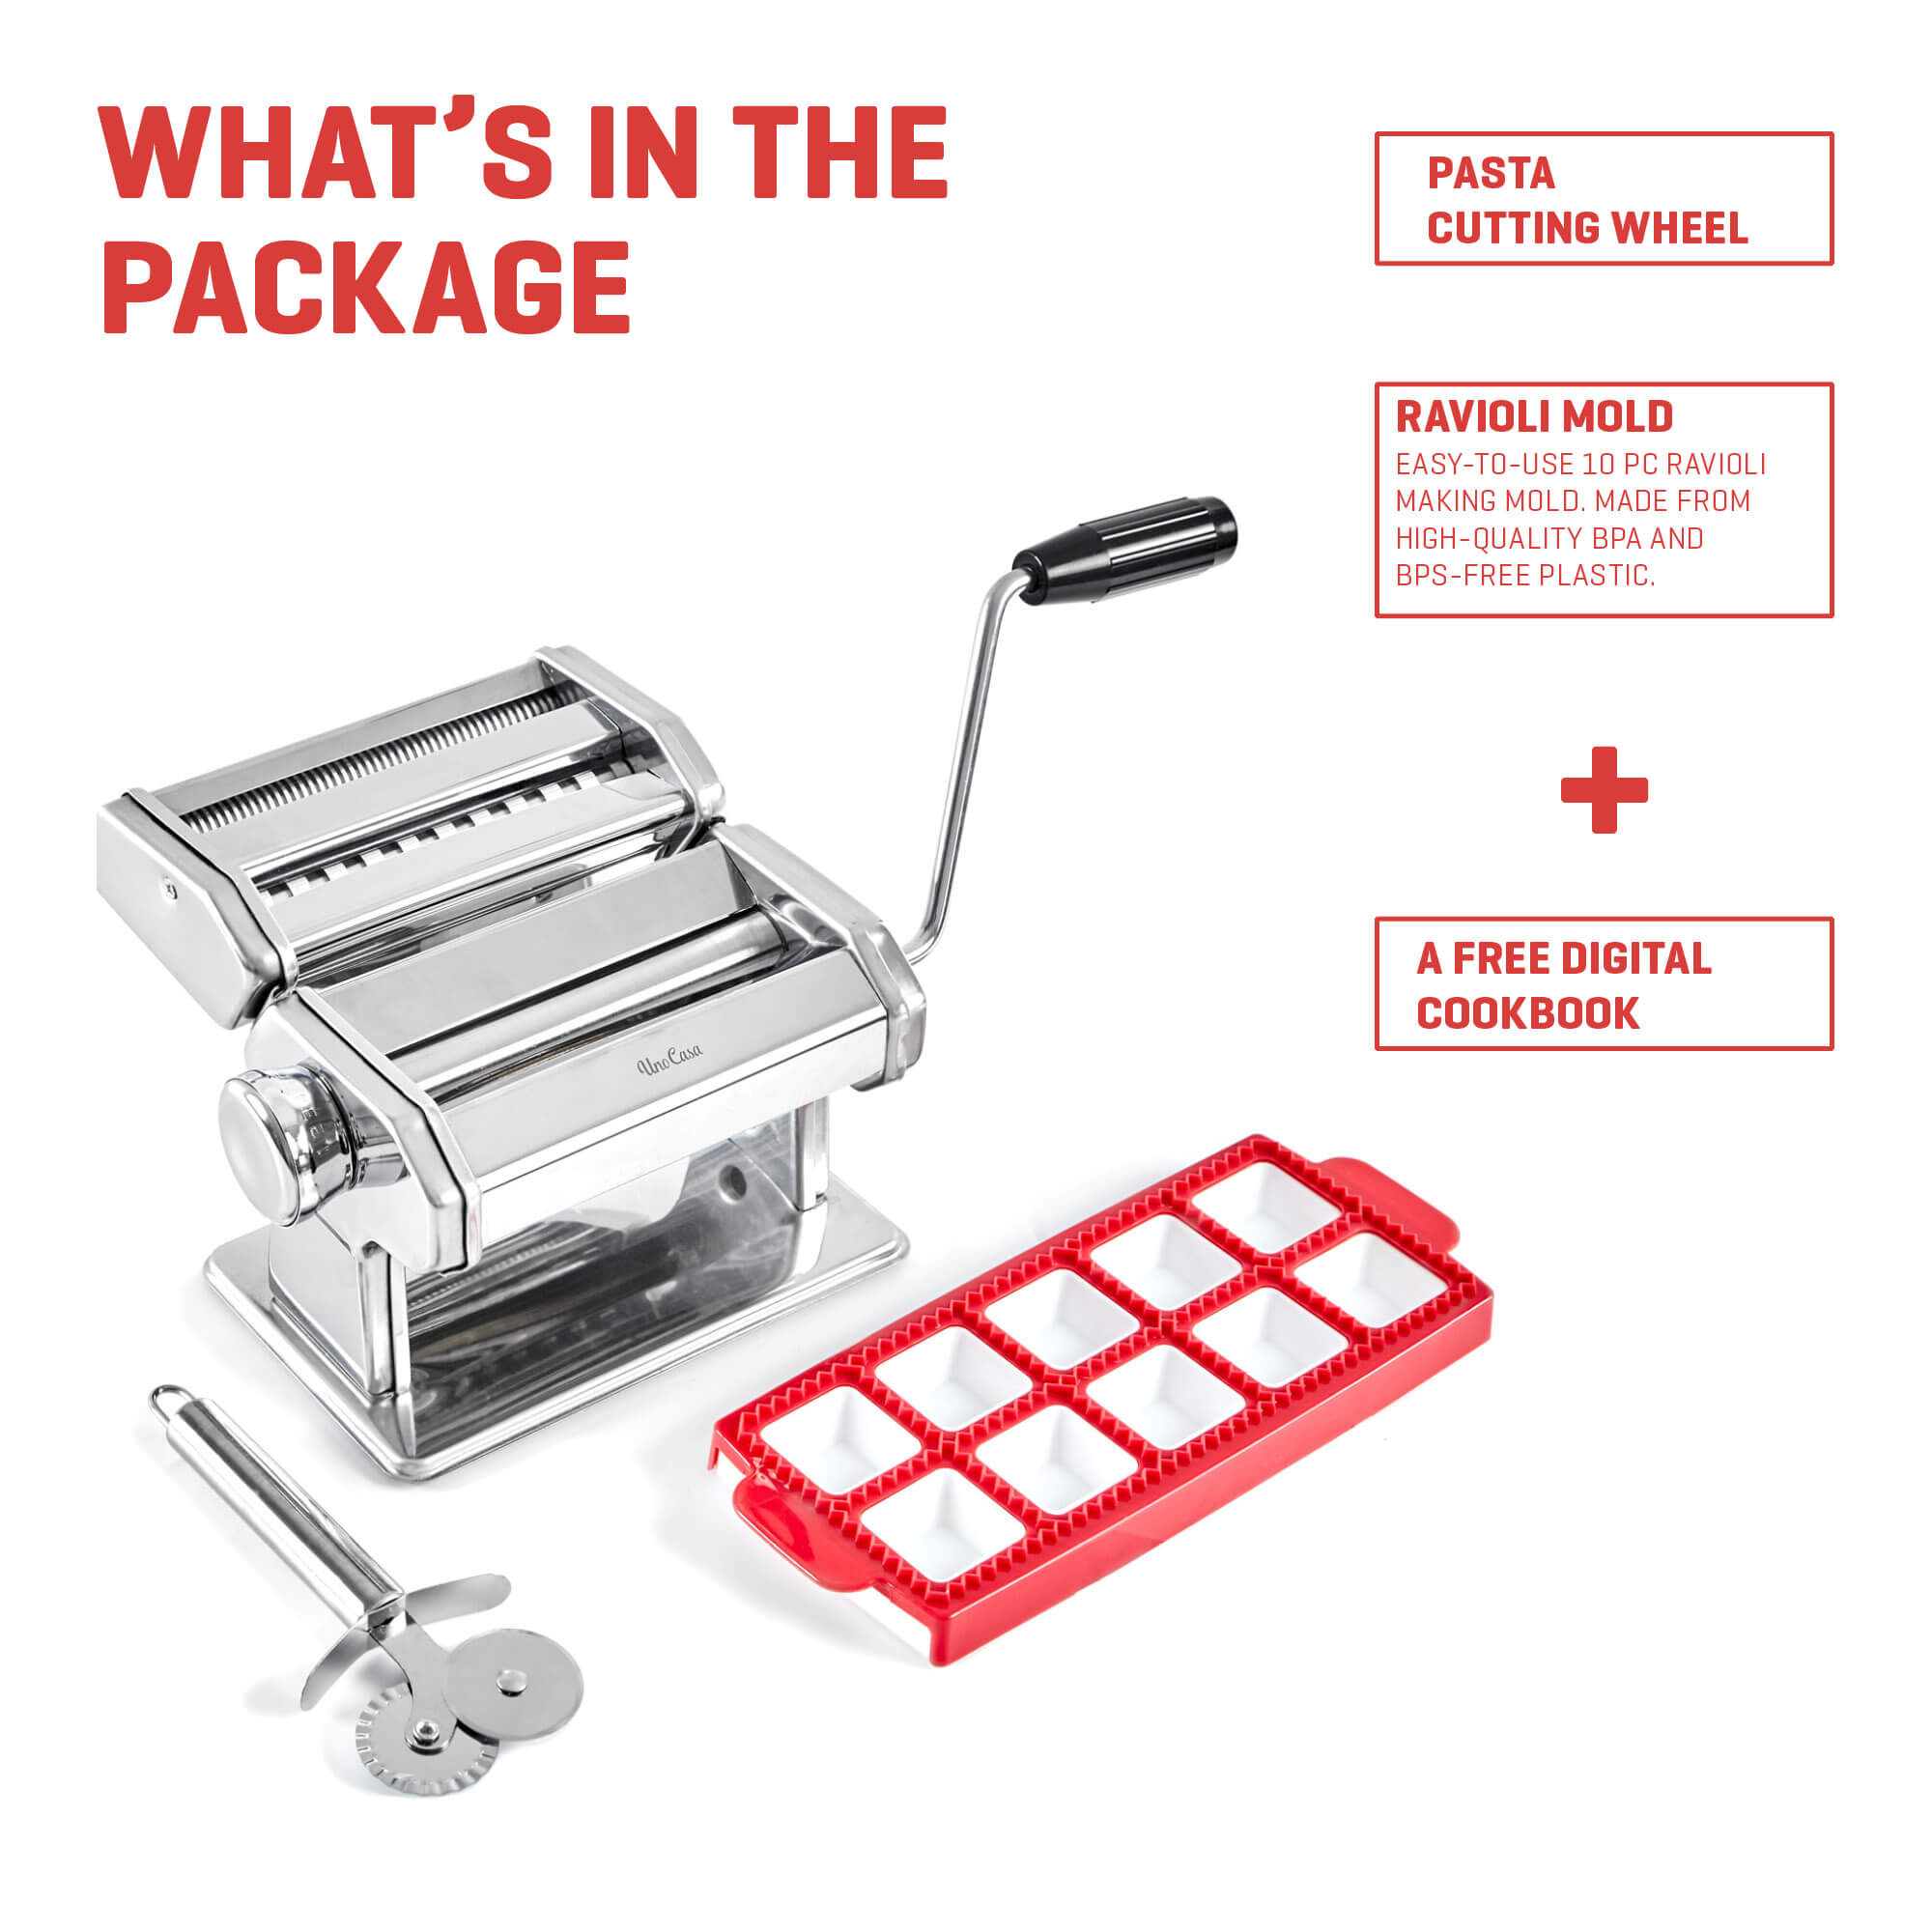 pasta maker what is in the package